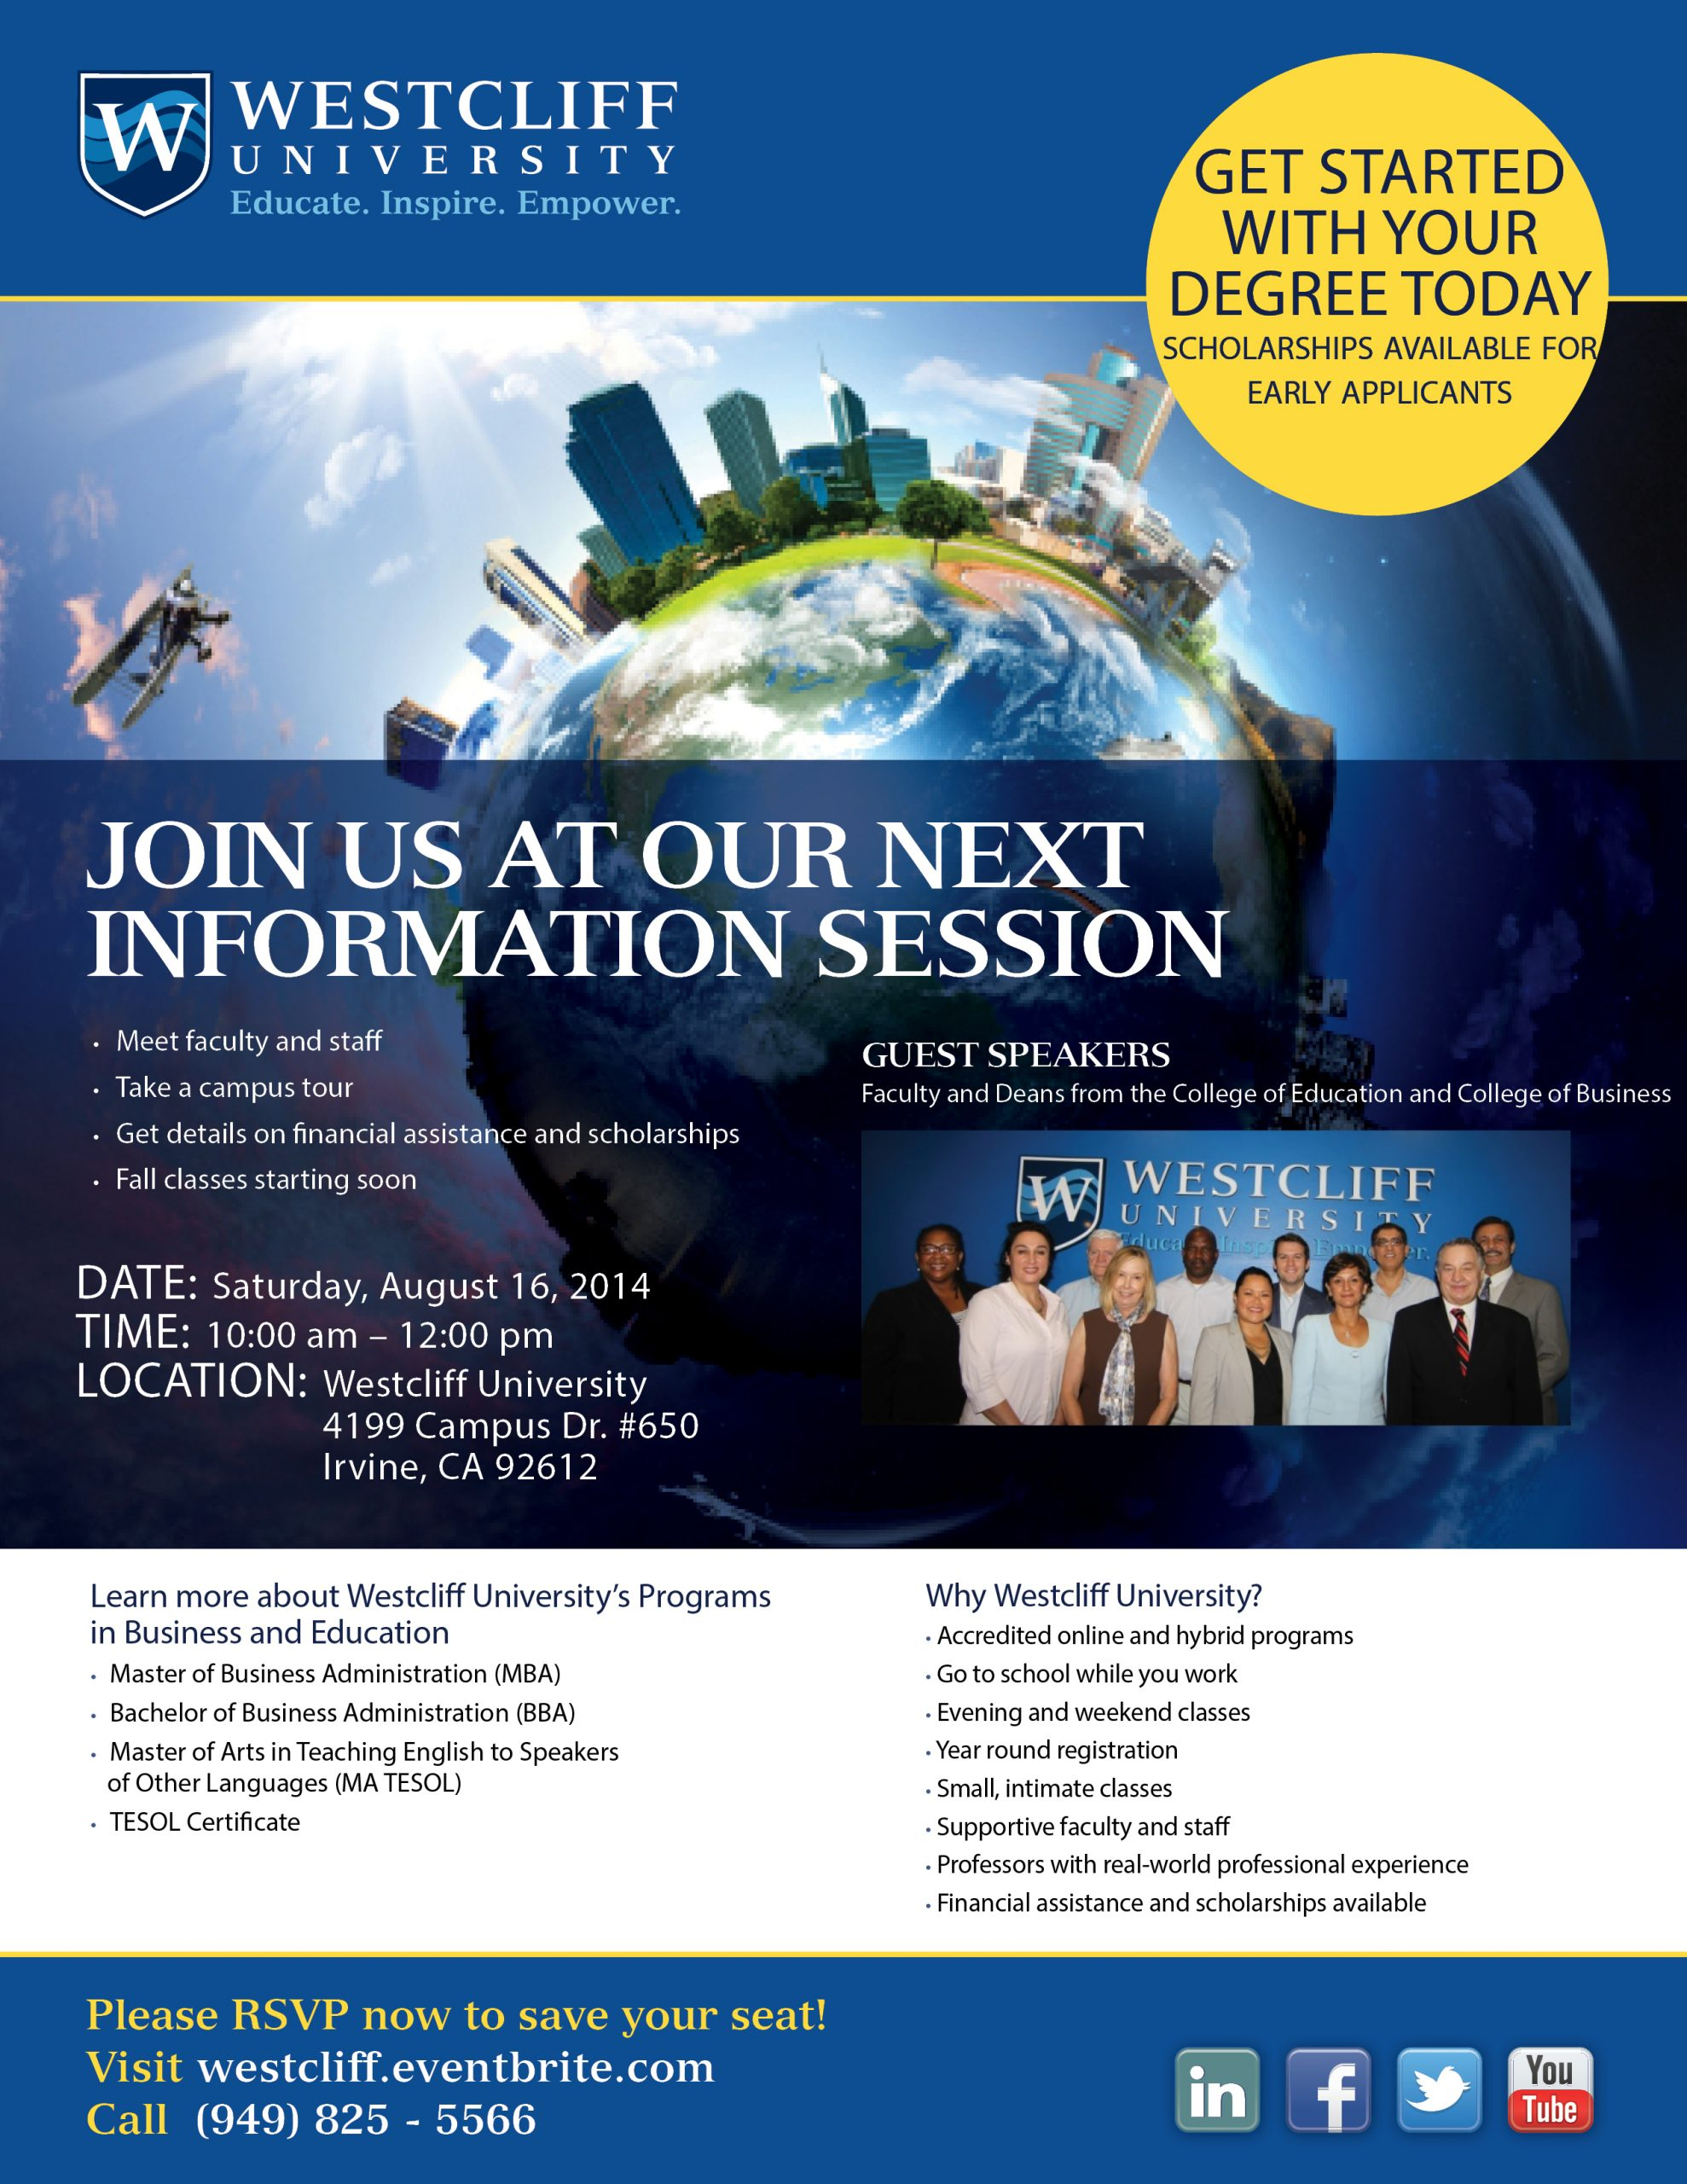 Fall 2014 Information Session on Saturday, 8/16/14 10AM-12PM